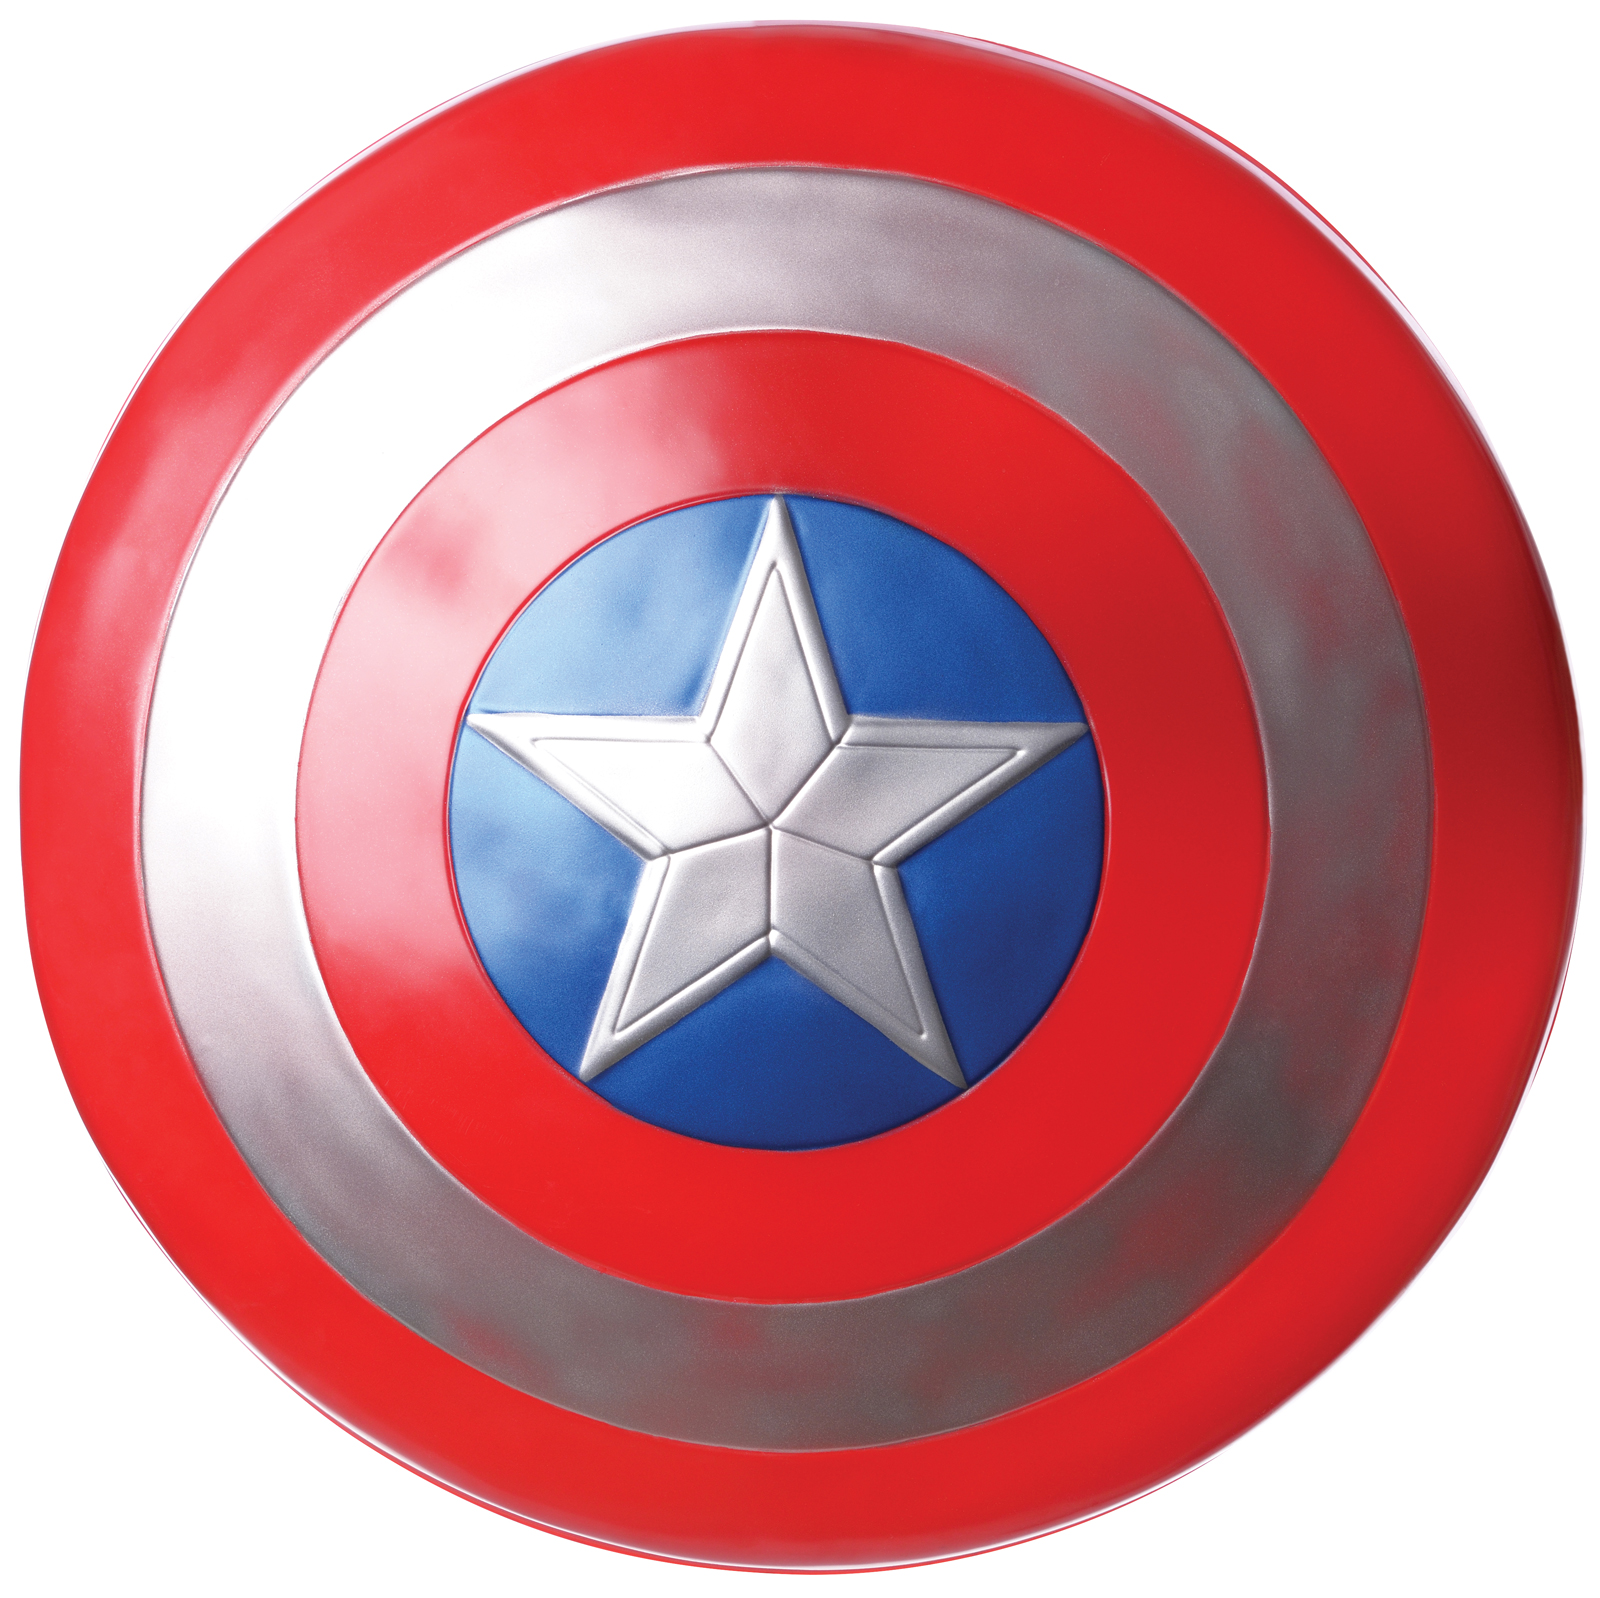 Avengers 2 - Age of Ultron: Deluxe Captain America Costume For ...